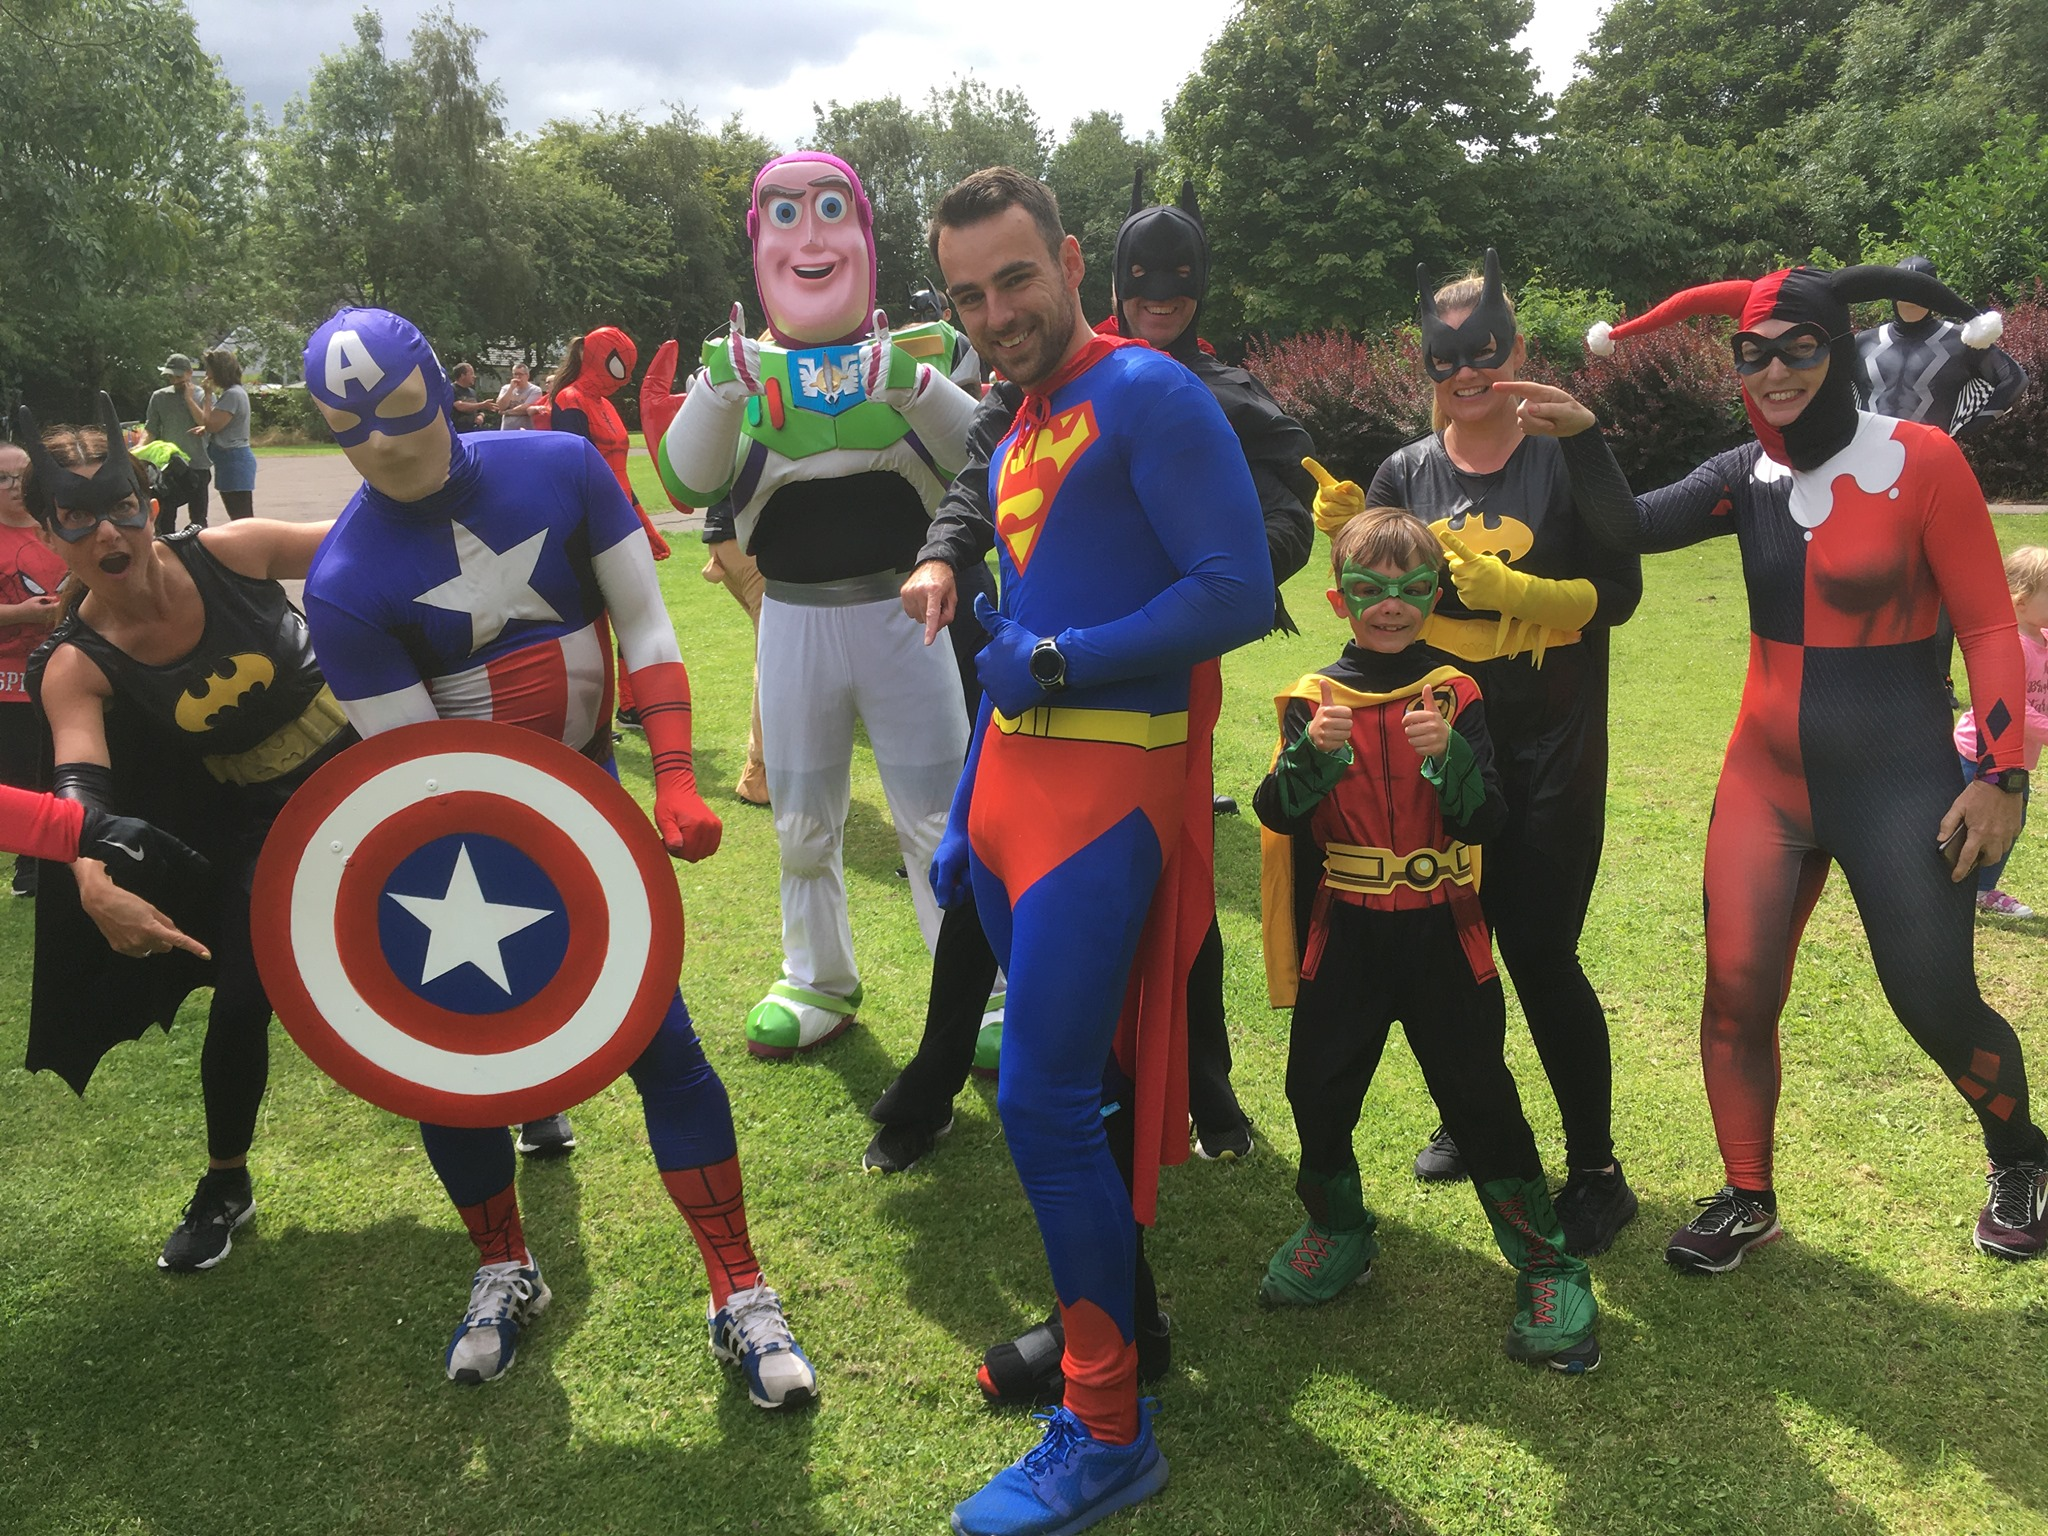 Broken bones didn't stop Captain America and Superman from making an appearance.